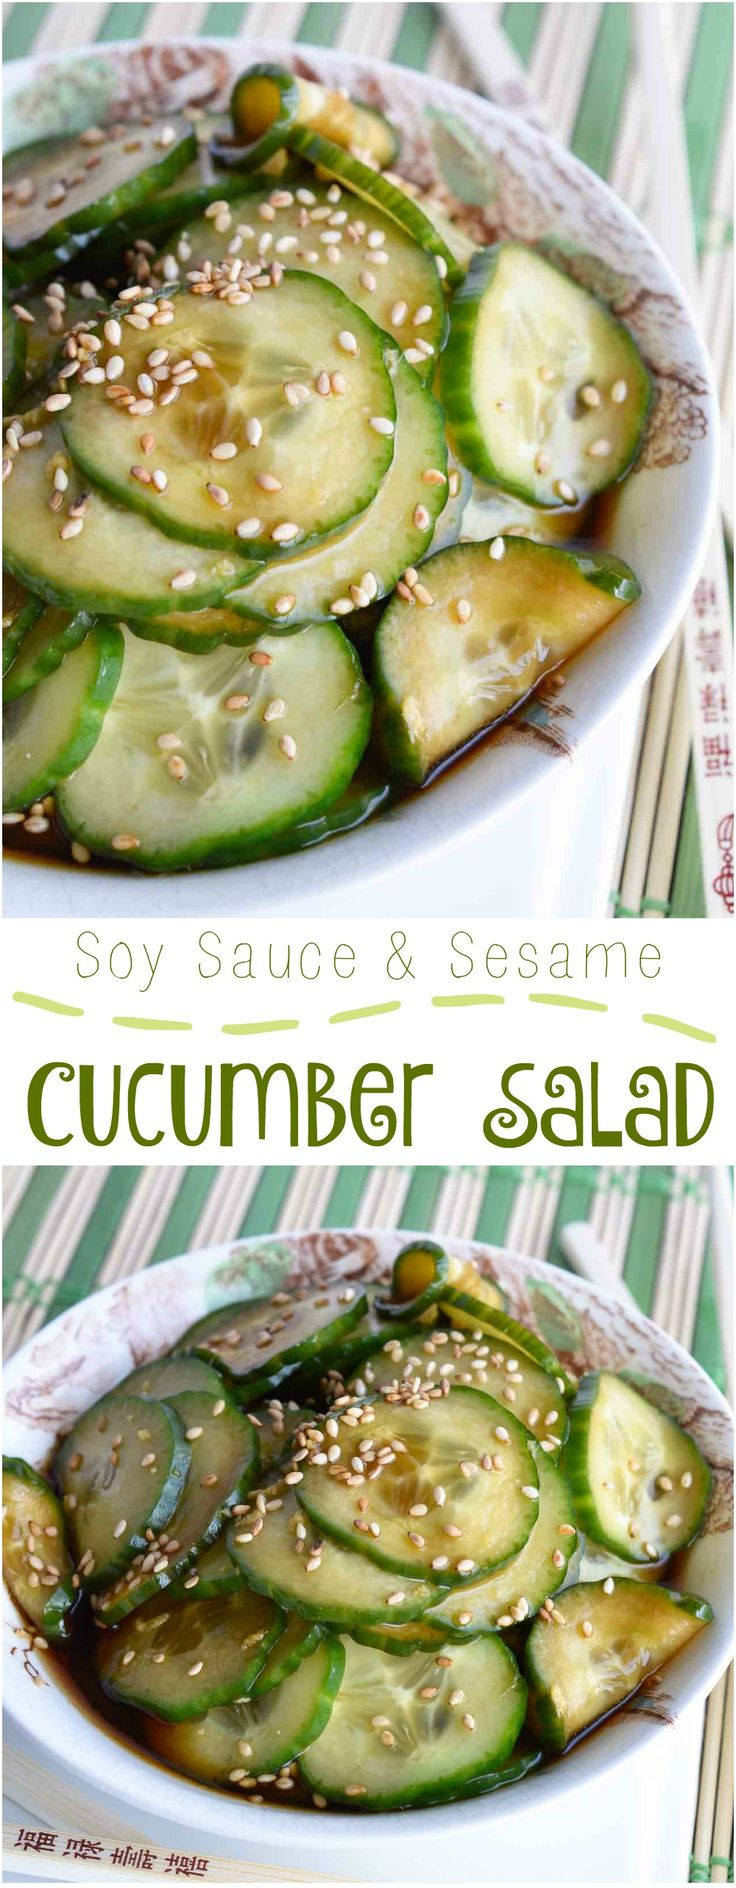 This Cucumber Salad Recipe is a quick, easy side dish that is perfect for summer! Thinly sliced cucumbers in a soy sauce sesame seed dressing. A cool vegan cucumber salad with Asian flair! #asian #salad wonkywonderful.com